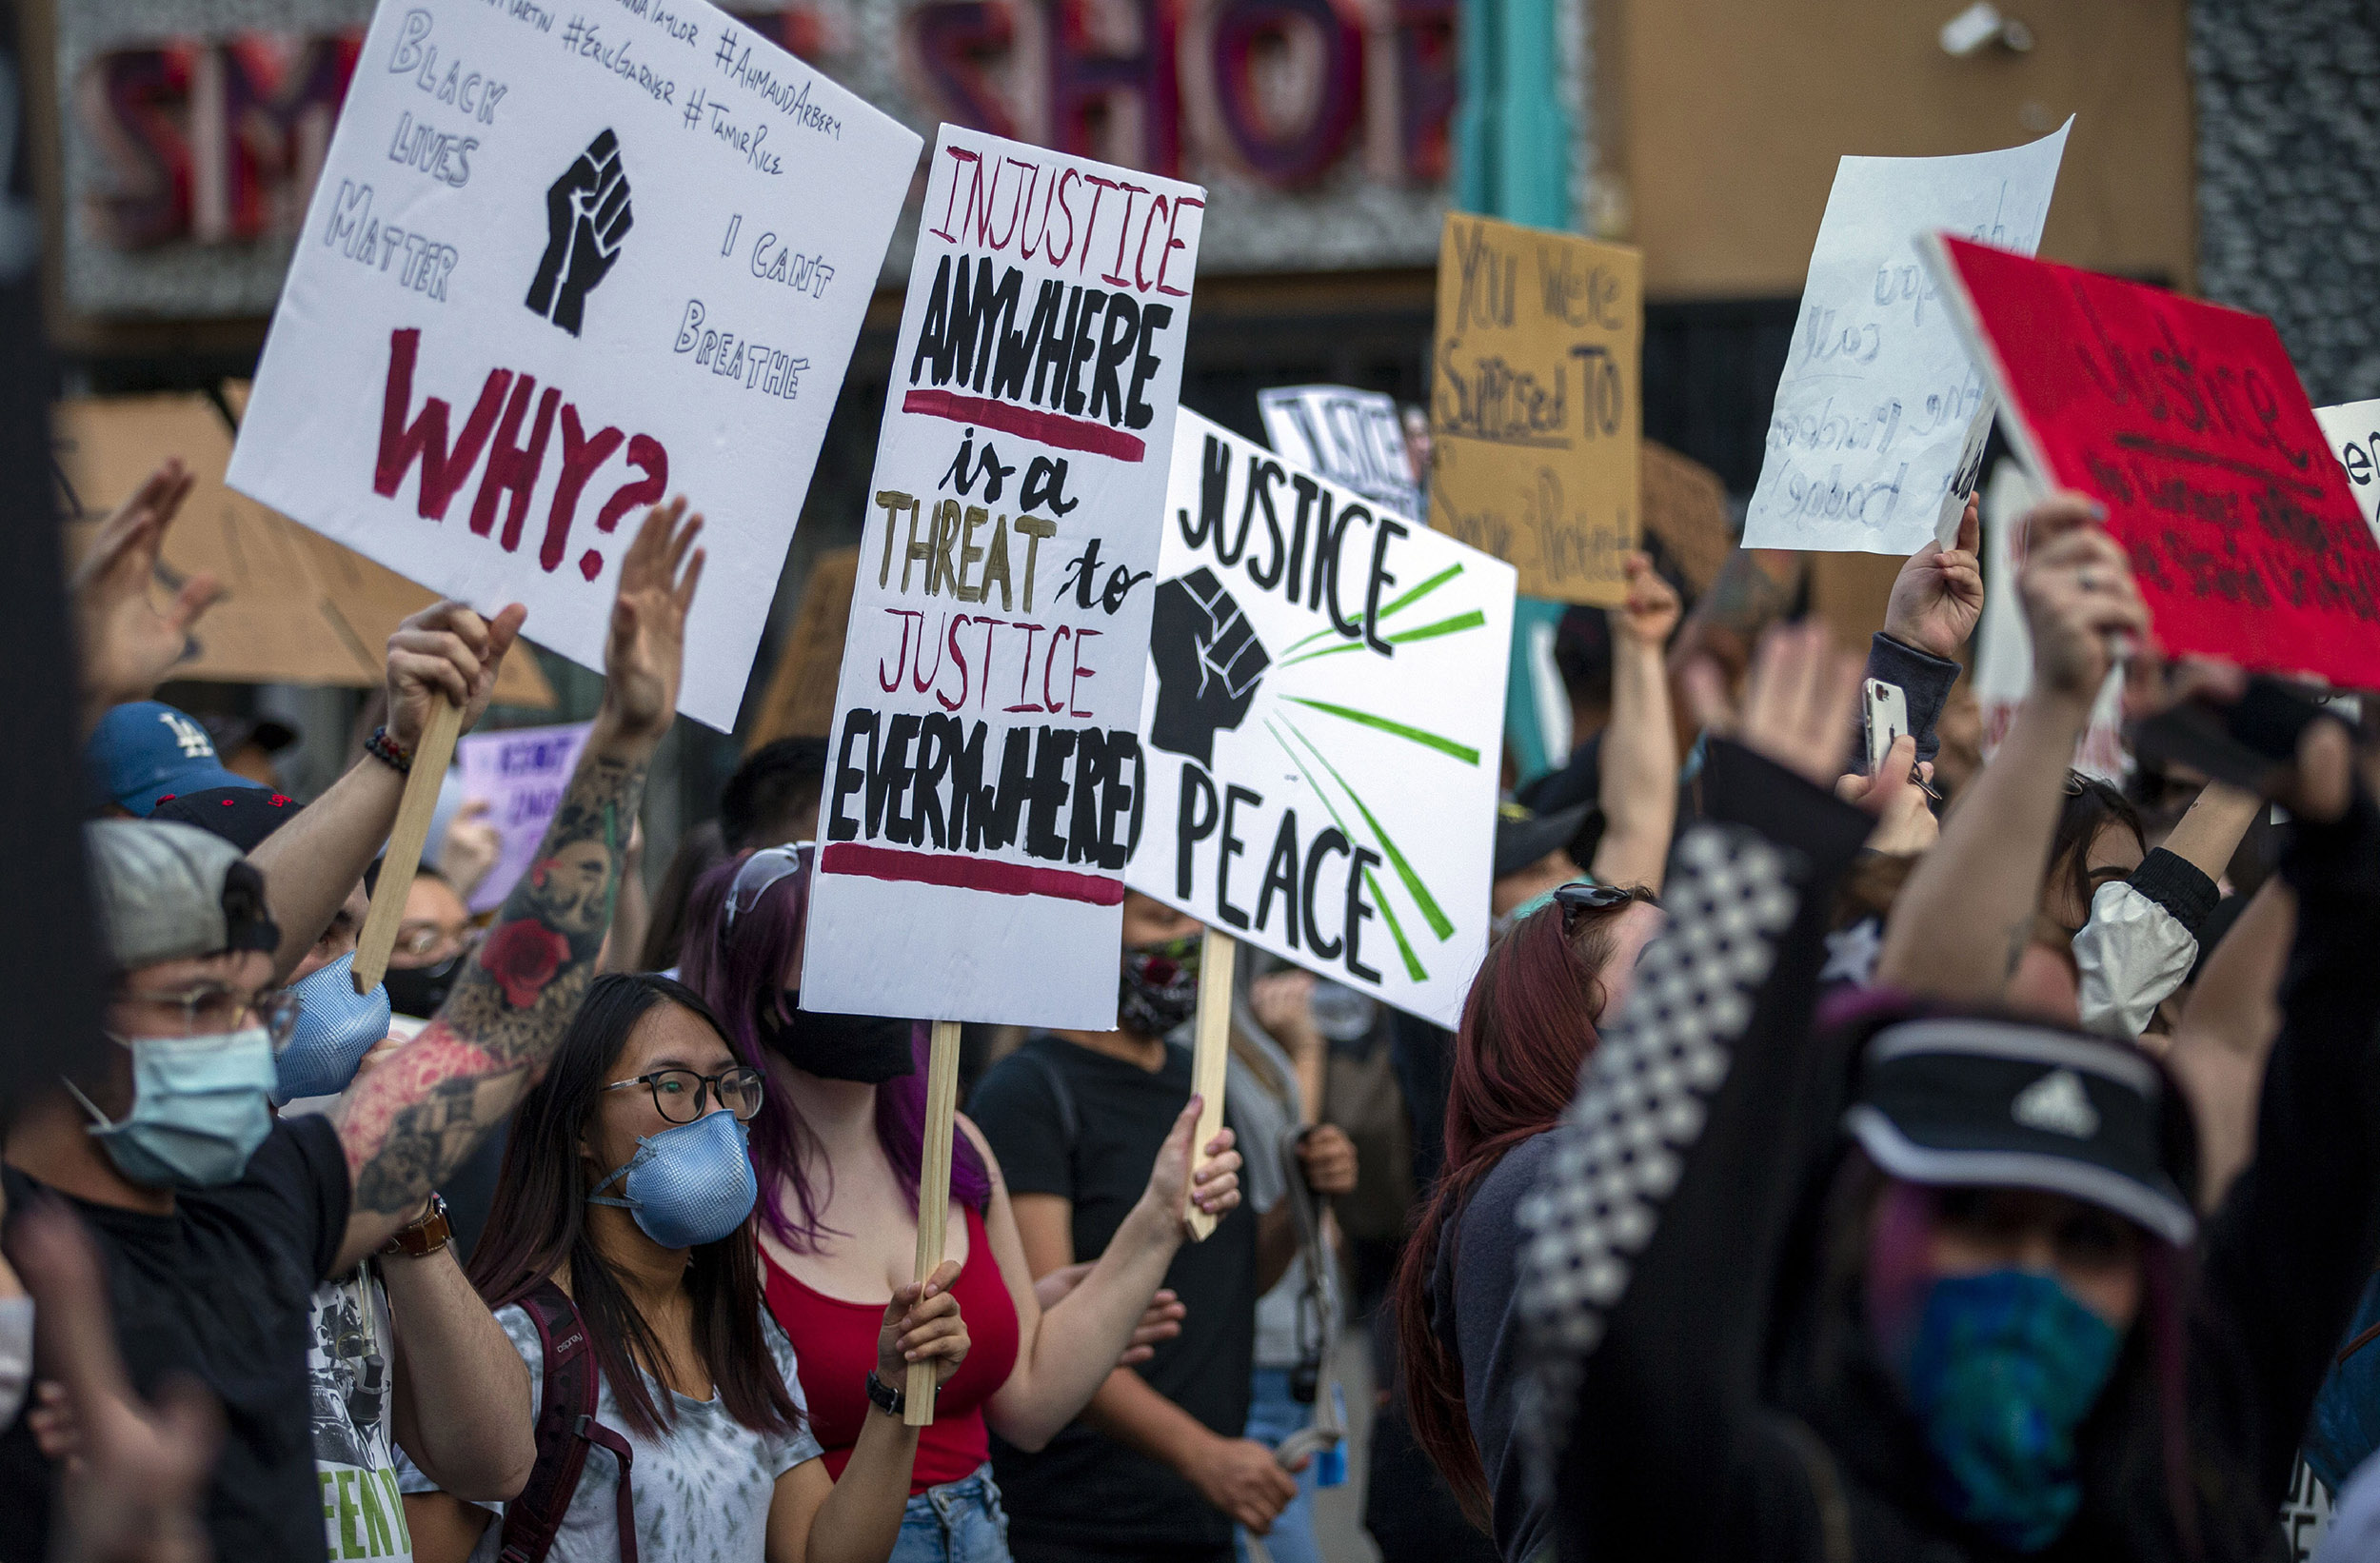 Demonstrators protest the death of George Floyd in downtown Albuquerque, New Mexico, on Sunday, May 31.